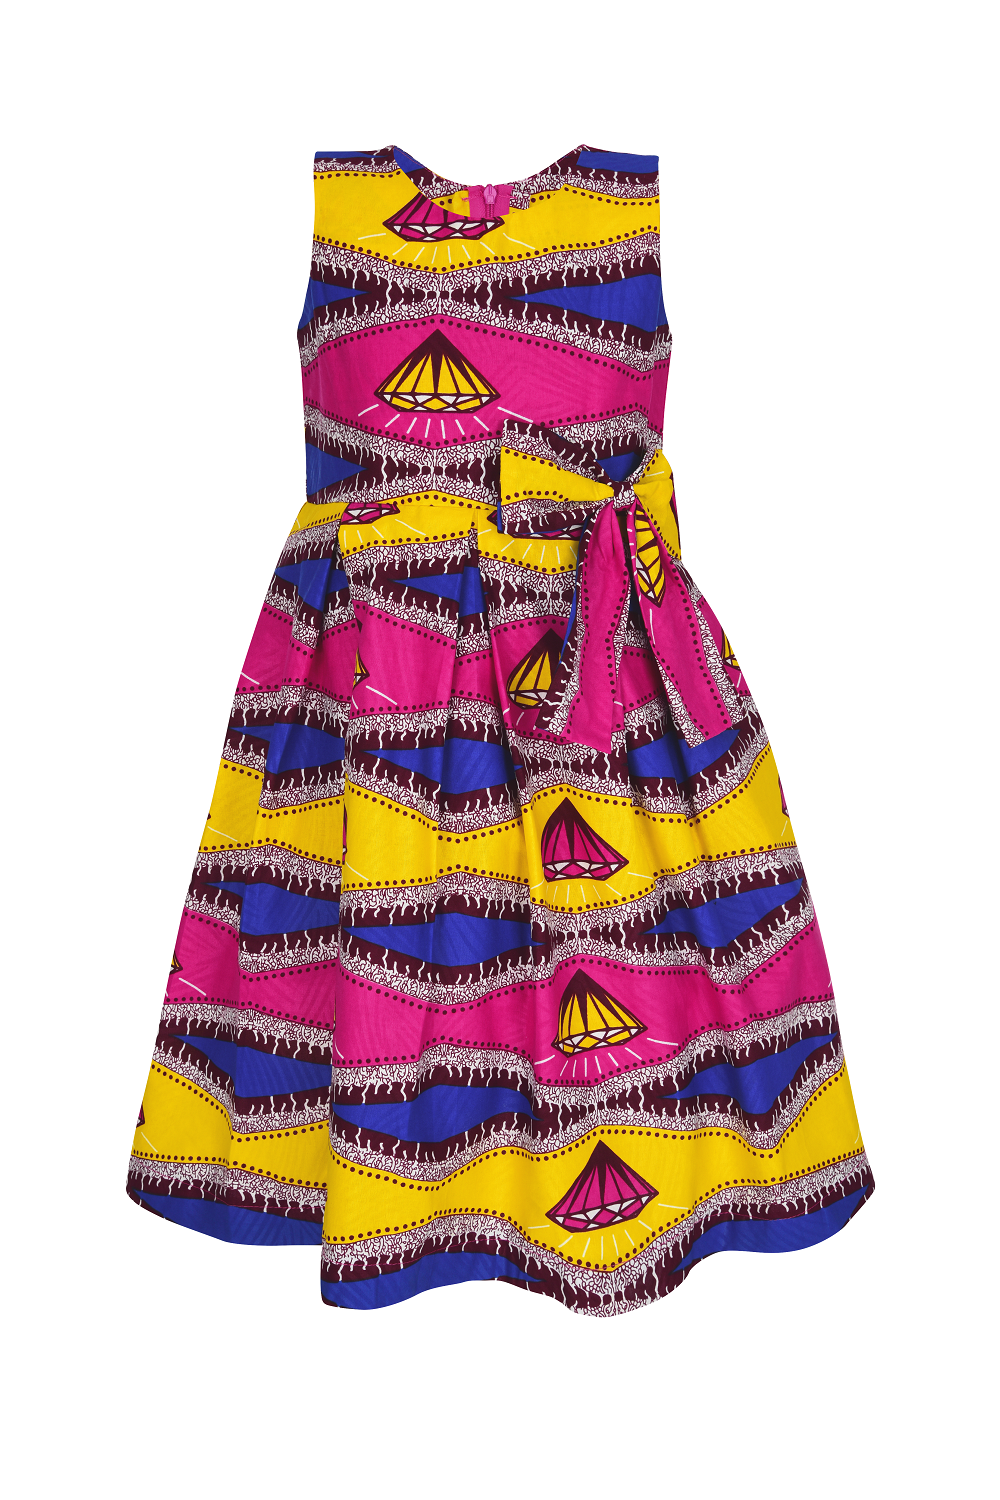 abobo african clothing for girls - yalinat